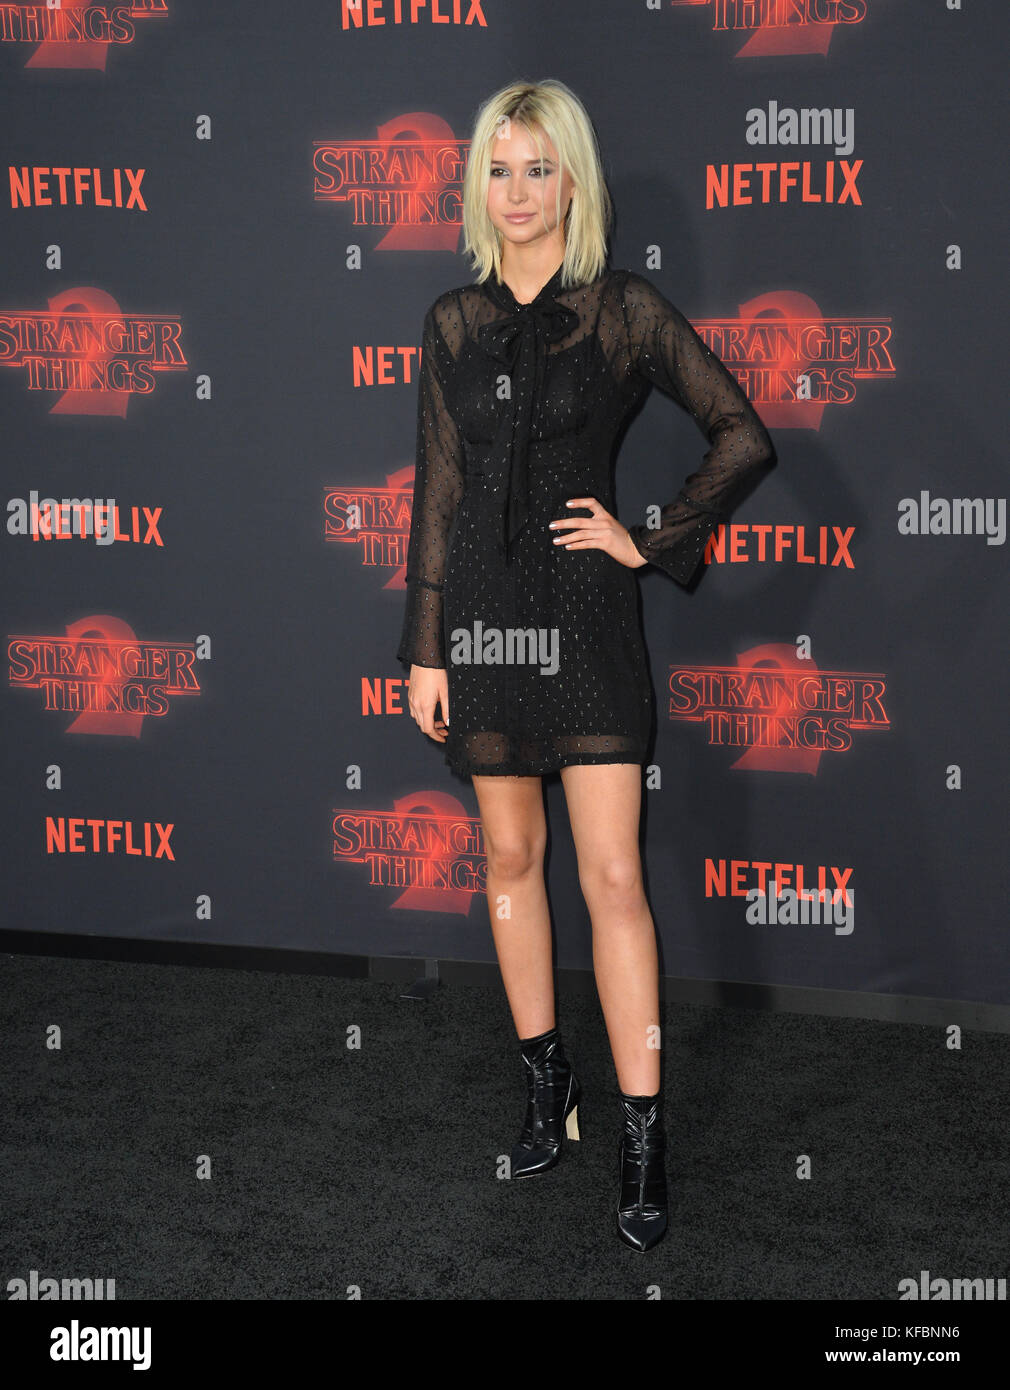 Los Angeles, USA. 26th Oct, 2017. Isabel May at the premiere for Netflix's 'Stranger Things 2' at the - Stock Image